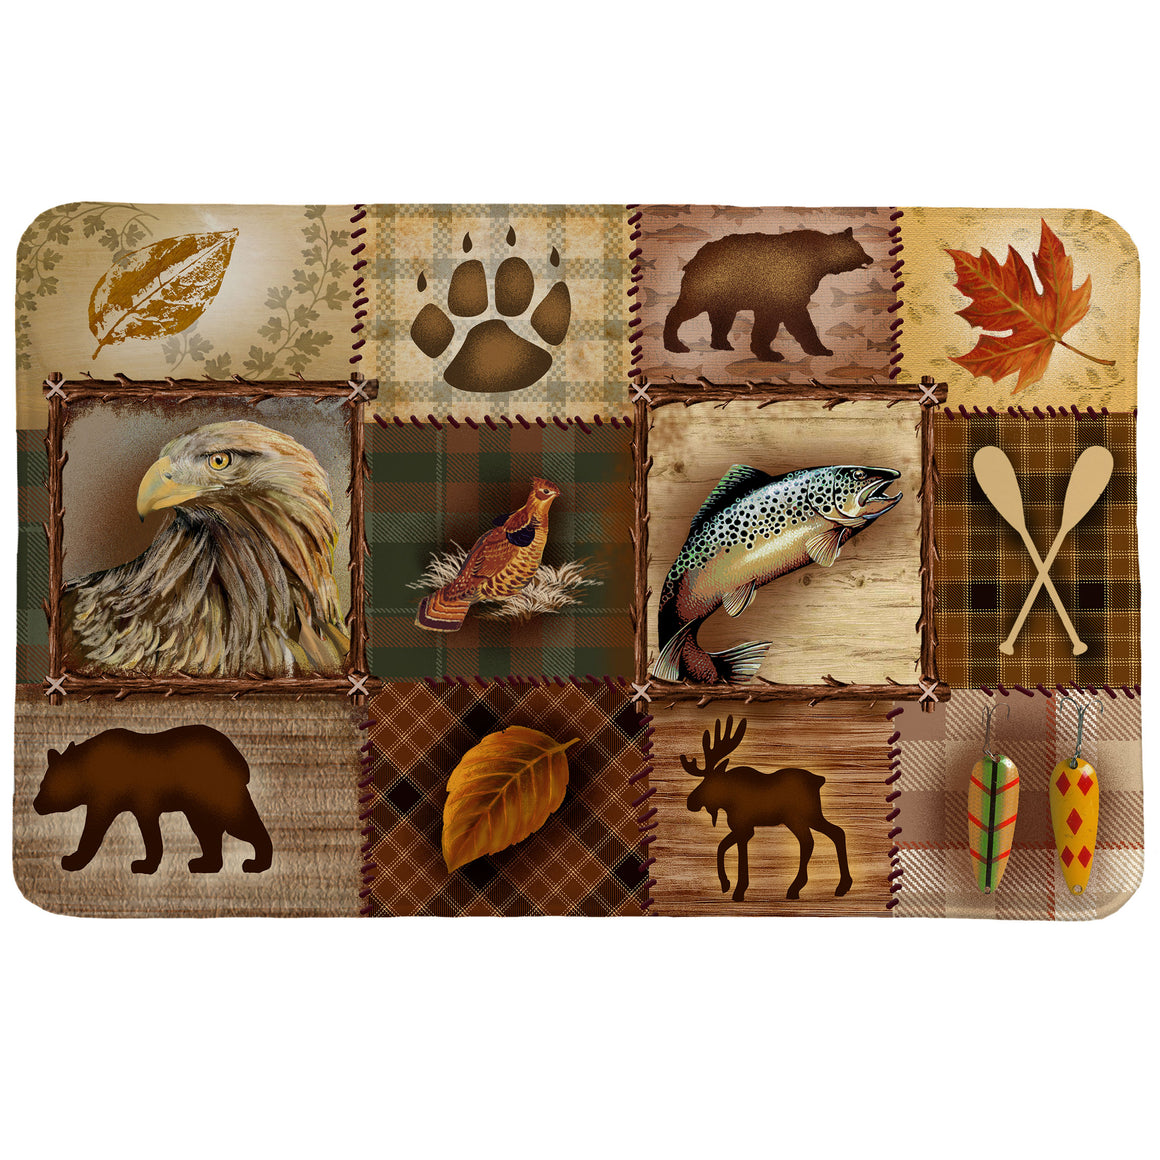 Plaid Lodge Memory Foam Rug is a fun patchwork of rustic outdoor images including animal and plant life.